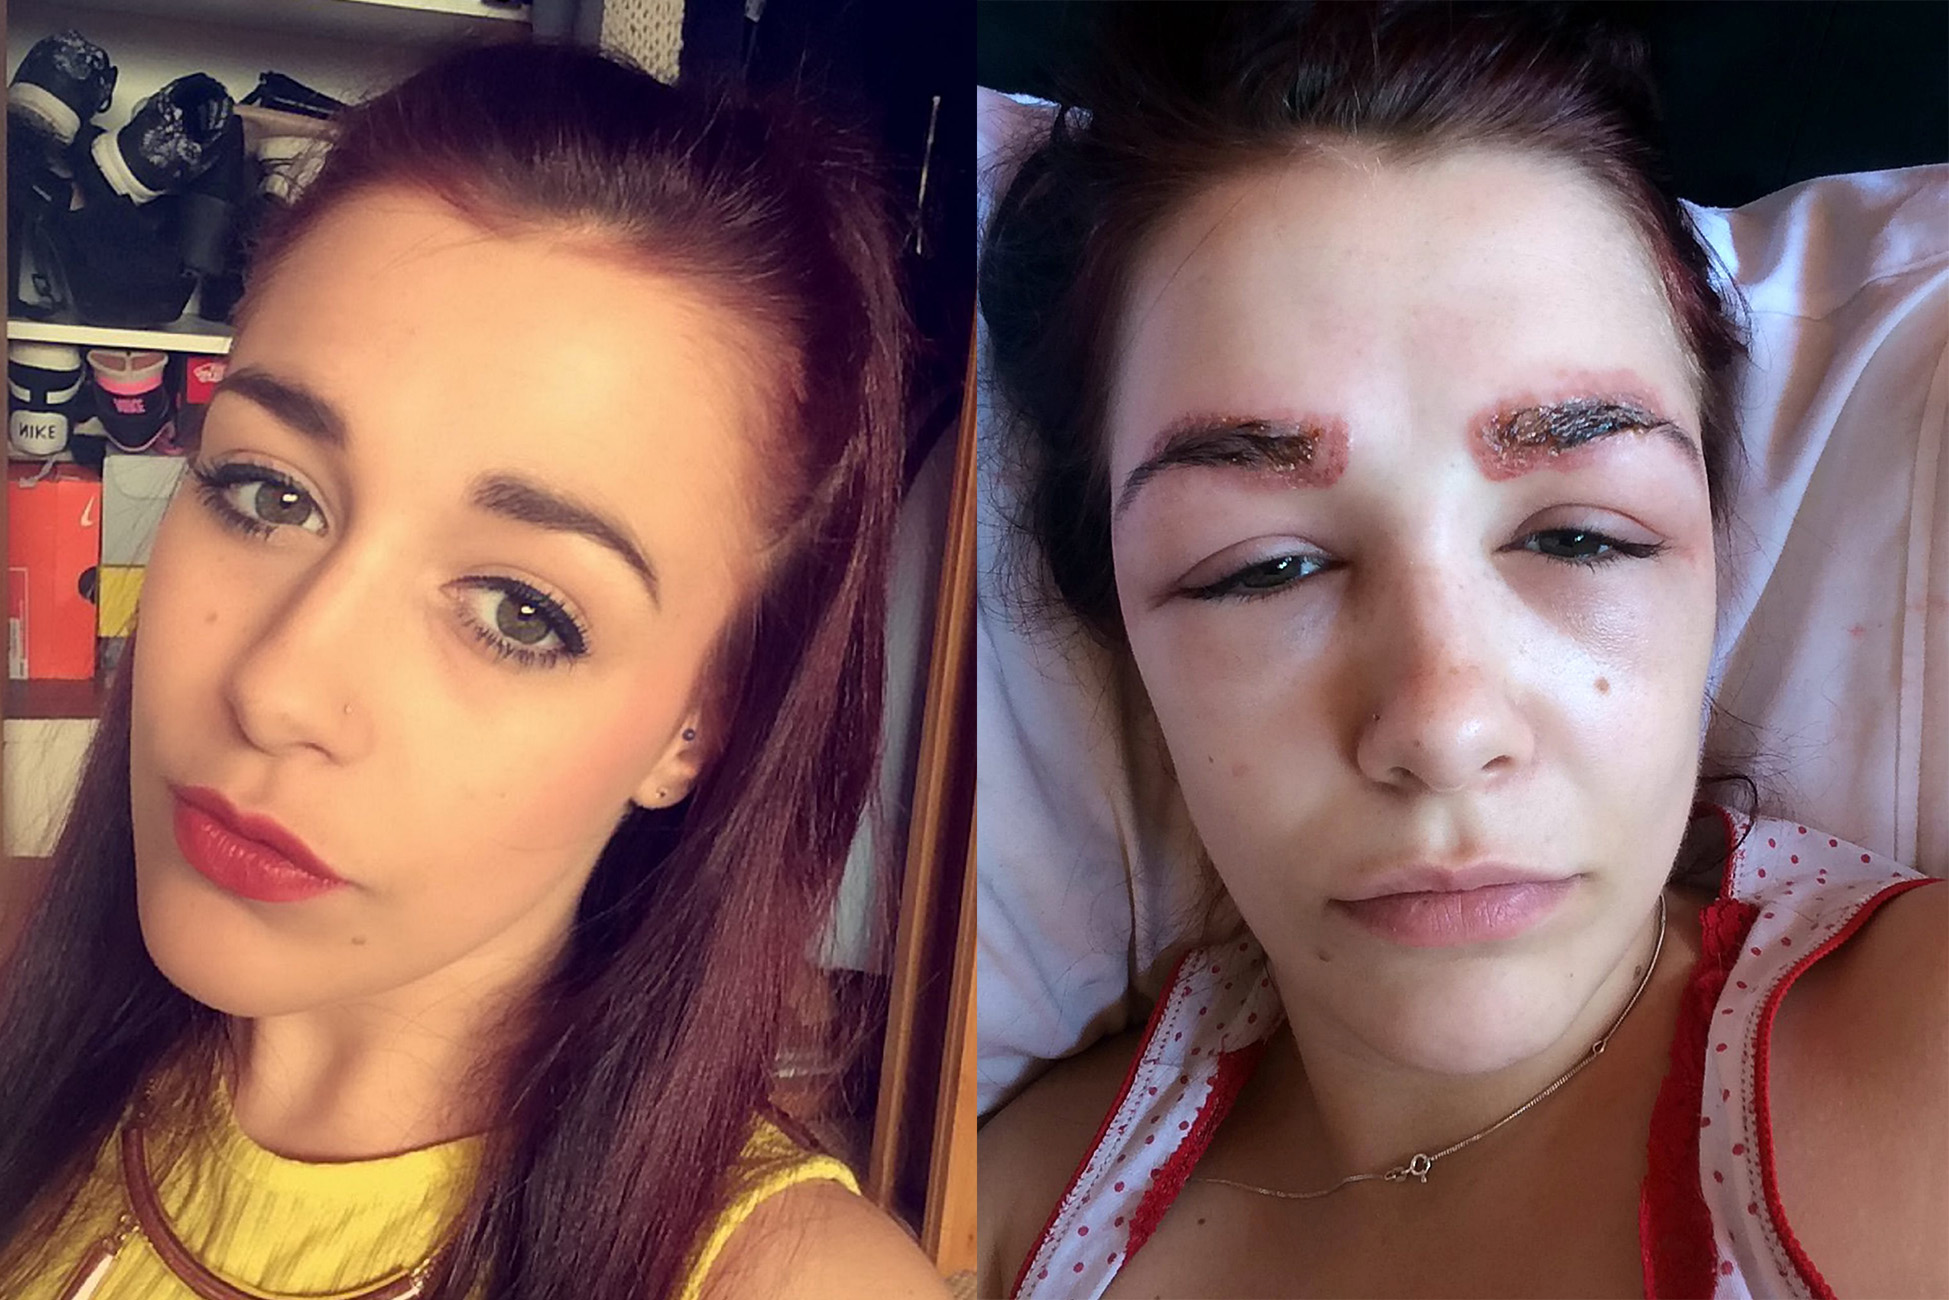 """Polly after her eyebrow treatment. A teenager fears she has been left permanently scarred after she had a severe allergy to an eyebrow tinting treatment which left her eyes swollen SHUT.See swns story SWBROWS. Polly Smith, 19, had the popular HD Eyebrow Treatment in the hopes of having thick eyebrows like her fashion idols.But she was horrified when just hours after the £35 dye, waxing and threading treatment, her eyebrows got itchy and red.The next day she woke up to find she could barely open her eyes - with one swollen totally shut - and her eyebrows had turned yellow and """"scabby"""" due to an infection.Medics diagnosed a severe allergic reaction to the dye and said she could be scarred for life, and now weeks later her eyebrows have started to fall out.The dance student from High Wycombe, Buckinghamshire, is warning young women to be wary of the treatment, which has left her self concious."""